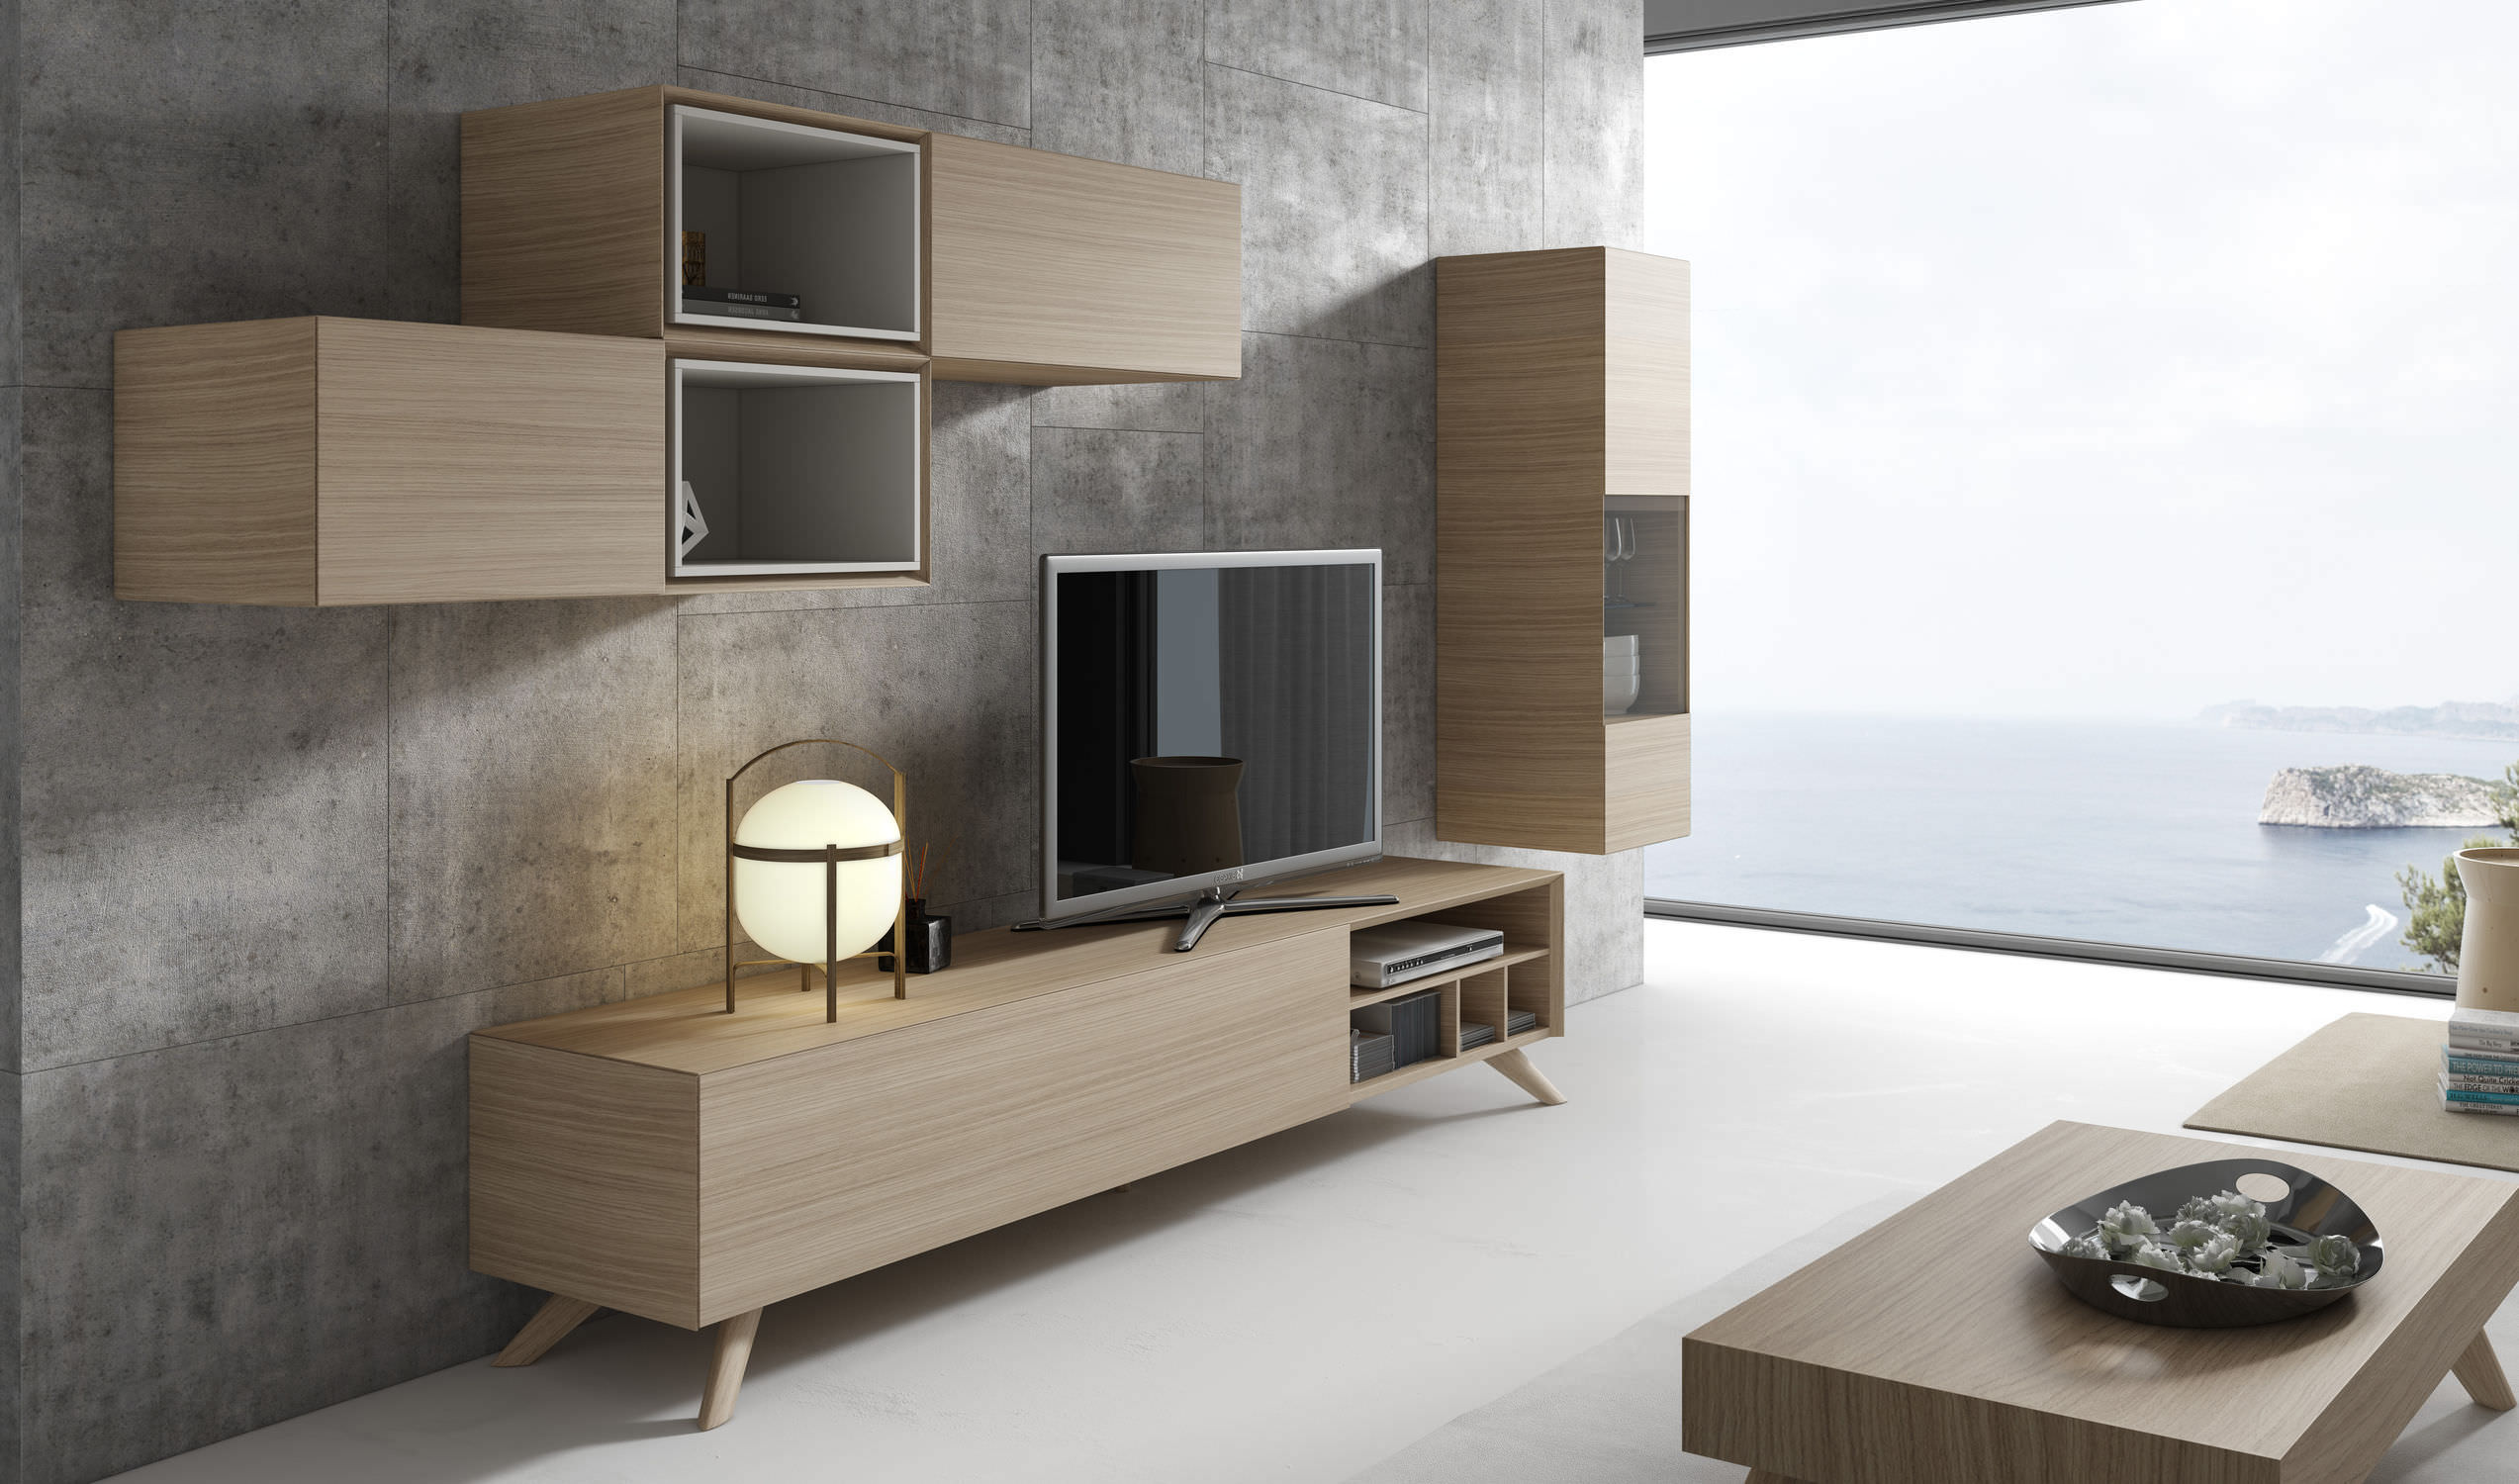 meuble tv modulable id es de d coration int rieure french decor. Black Bedroom Furniture Sets. Home Design Ideas